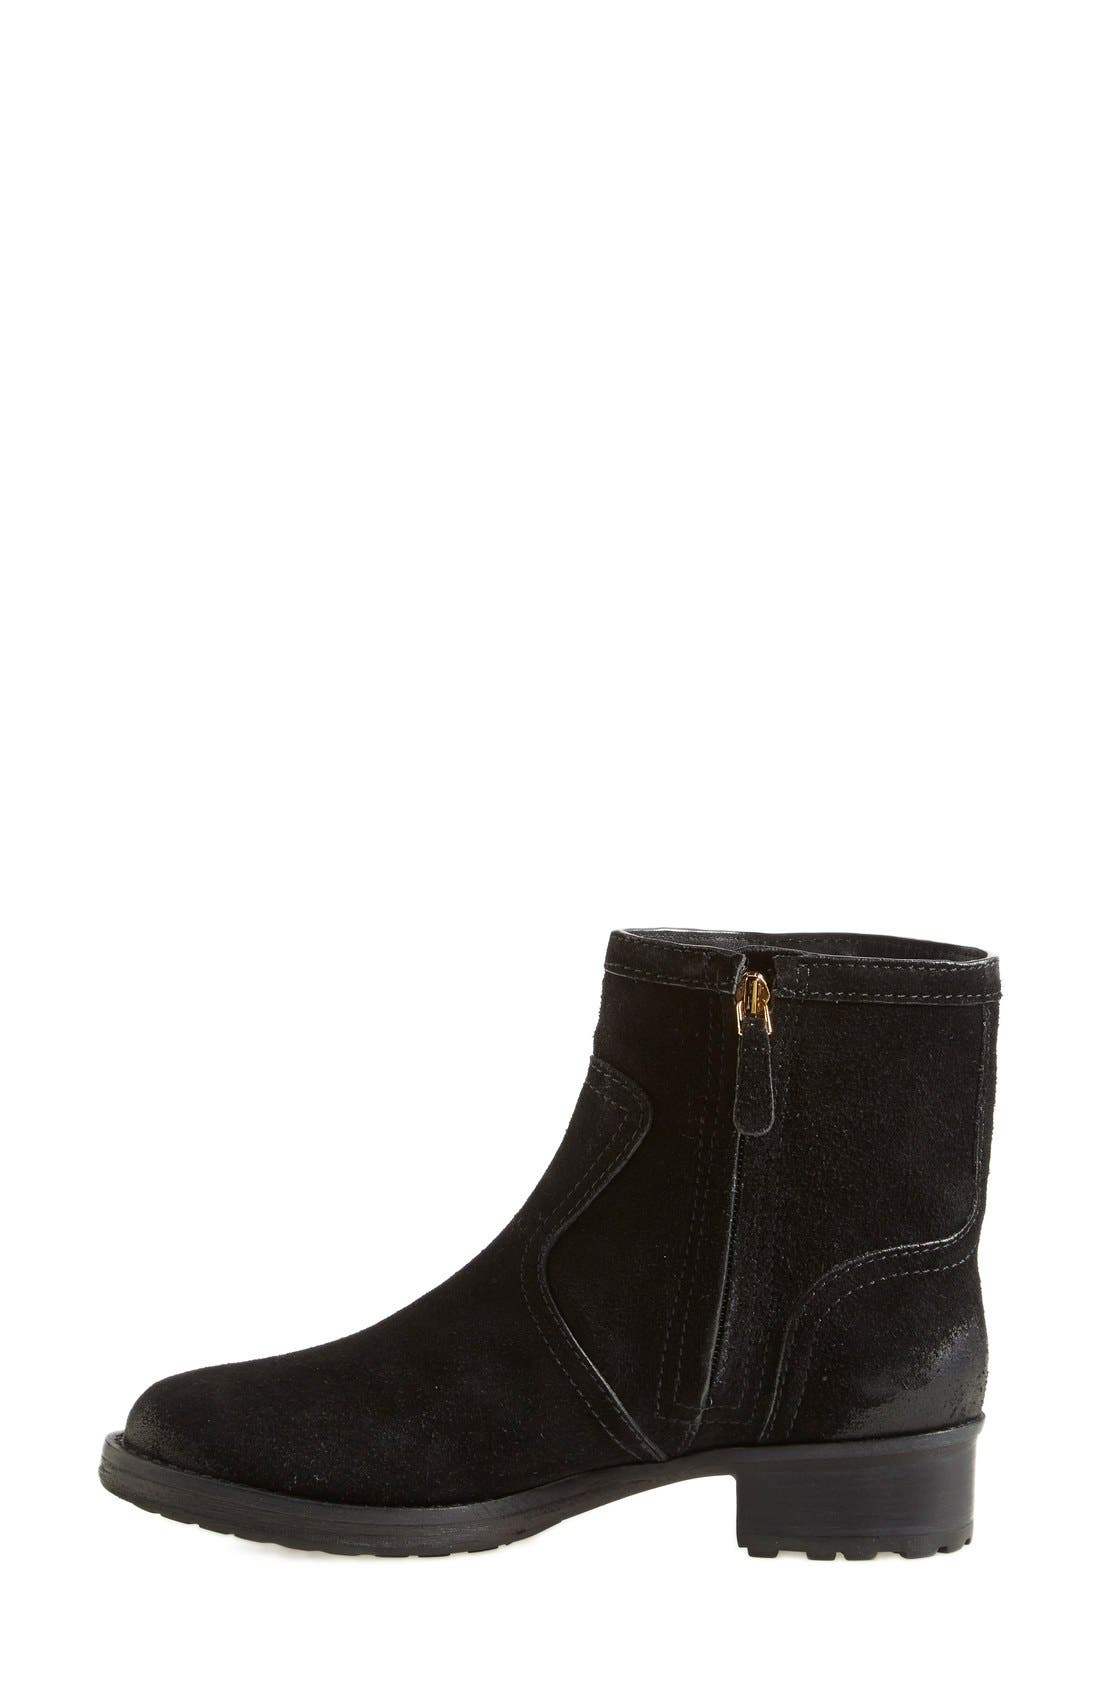 Alternate Image 5  - Tory Burch 'Eloise' Flat Bootie